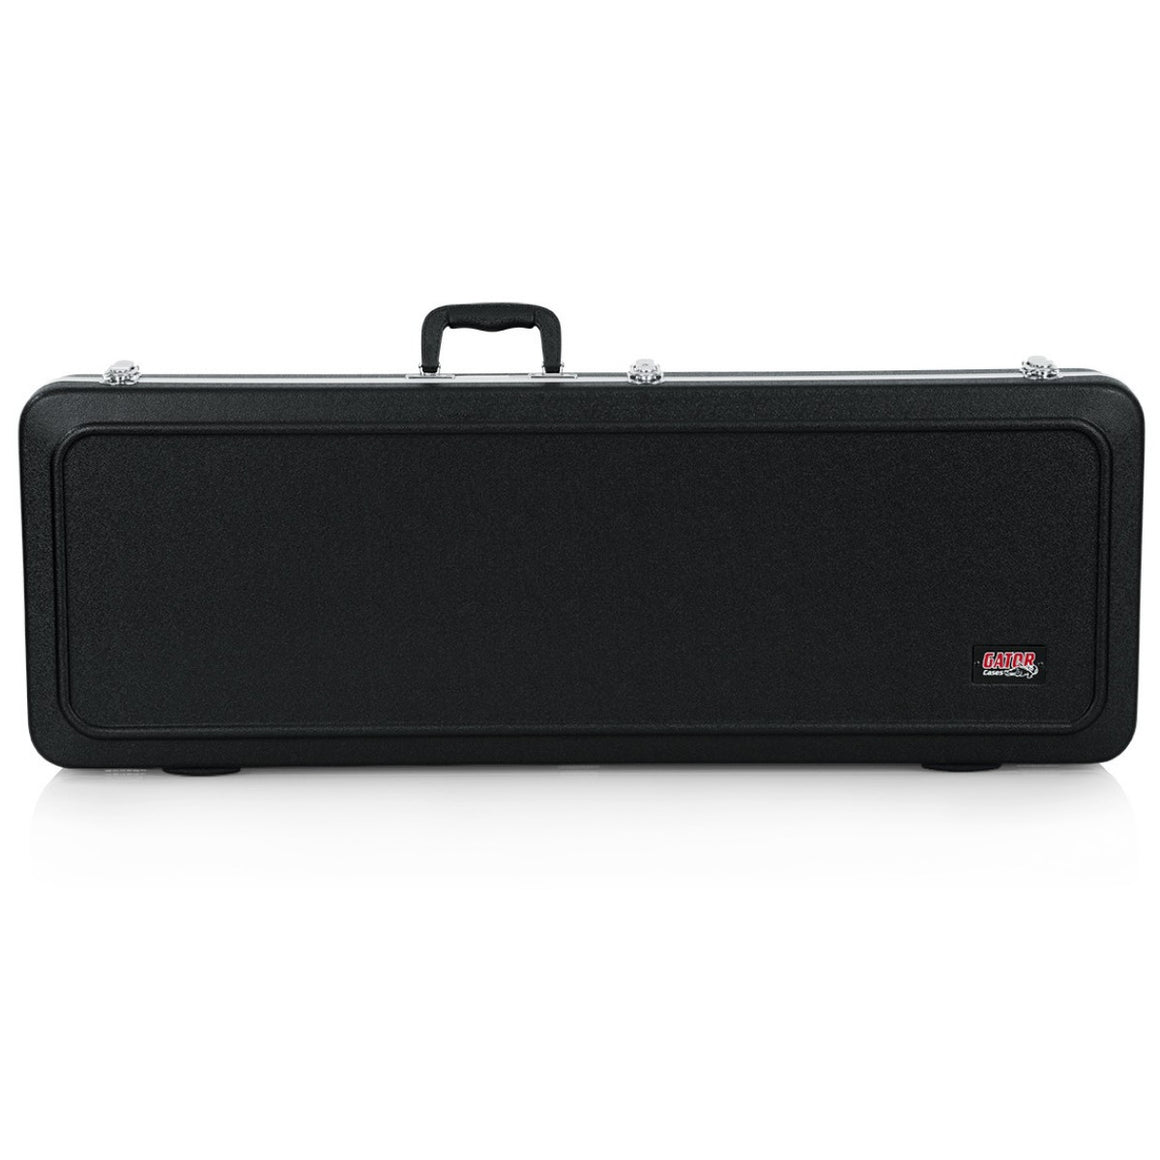 Gator GC-ELECTRIC-A ABS Molded Hard Case